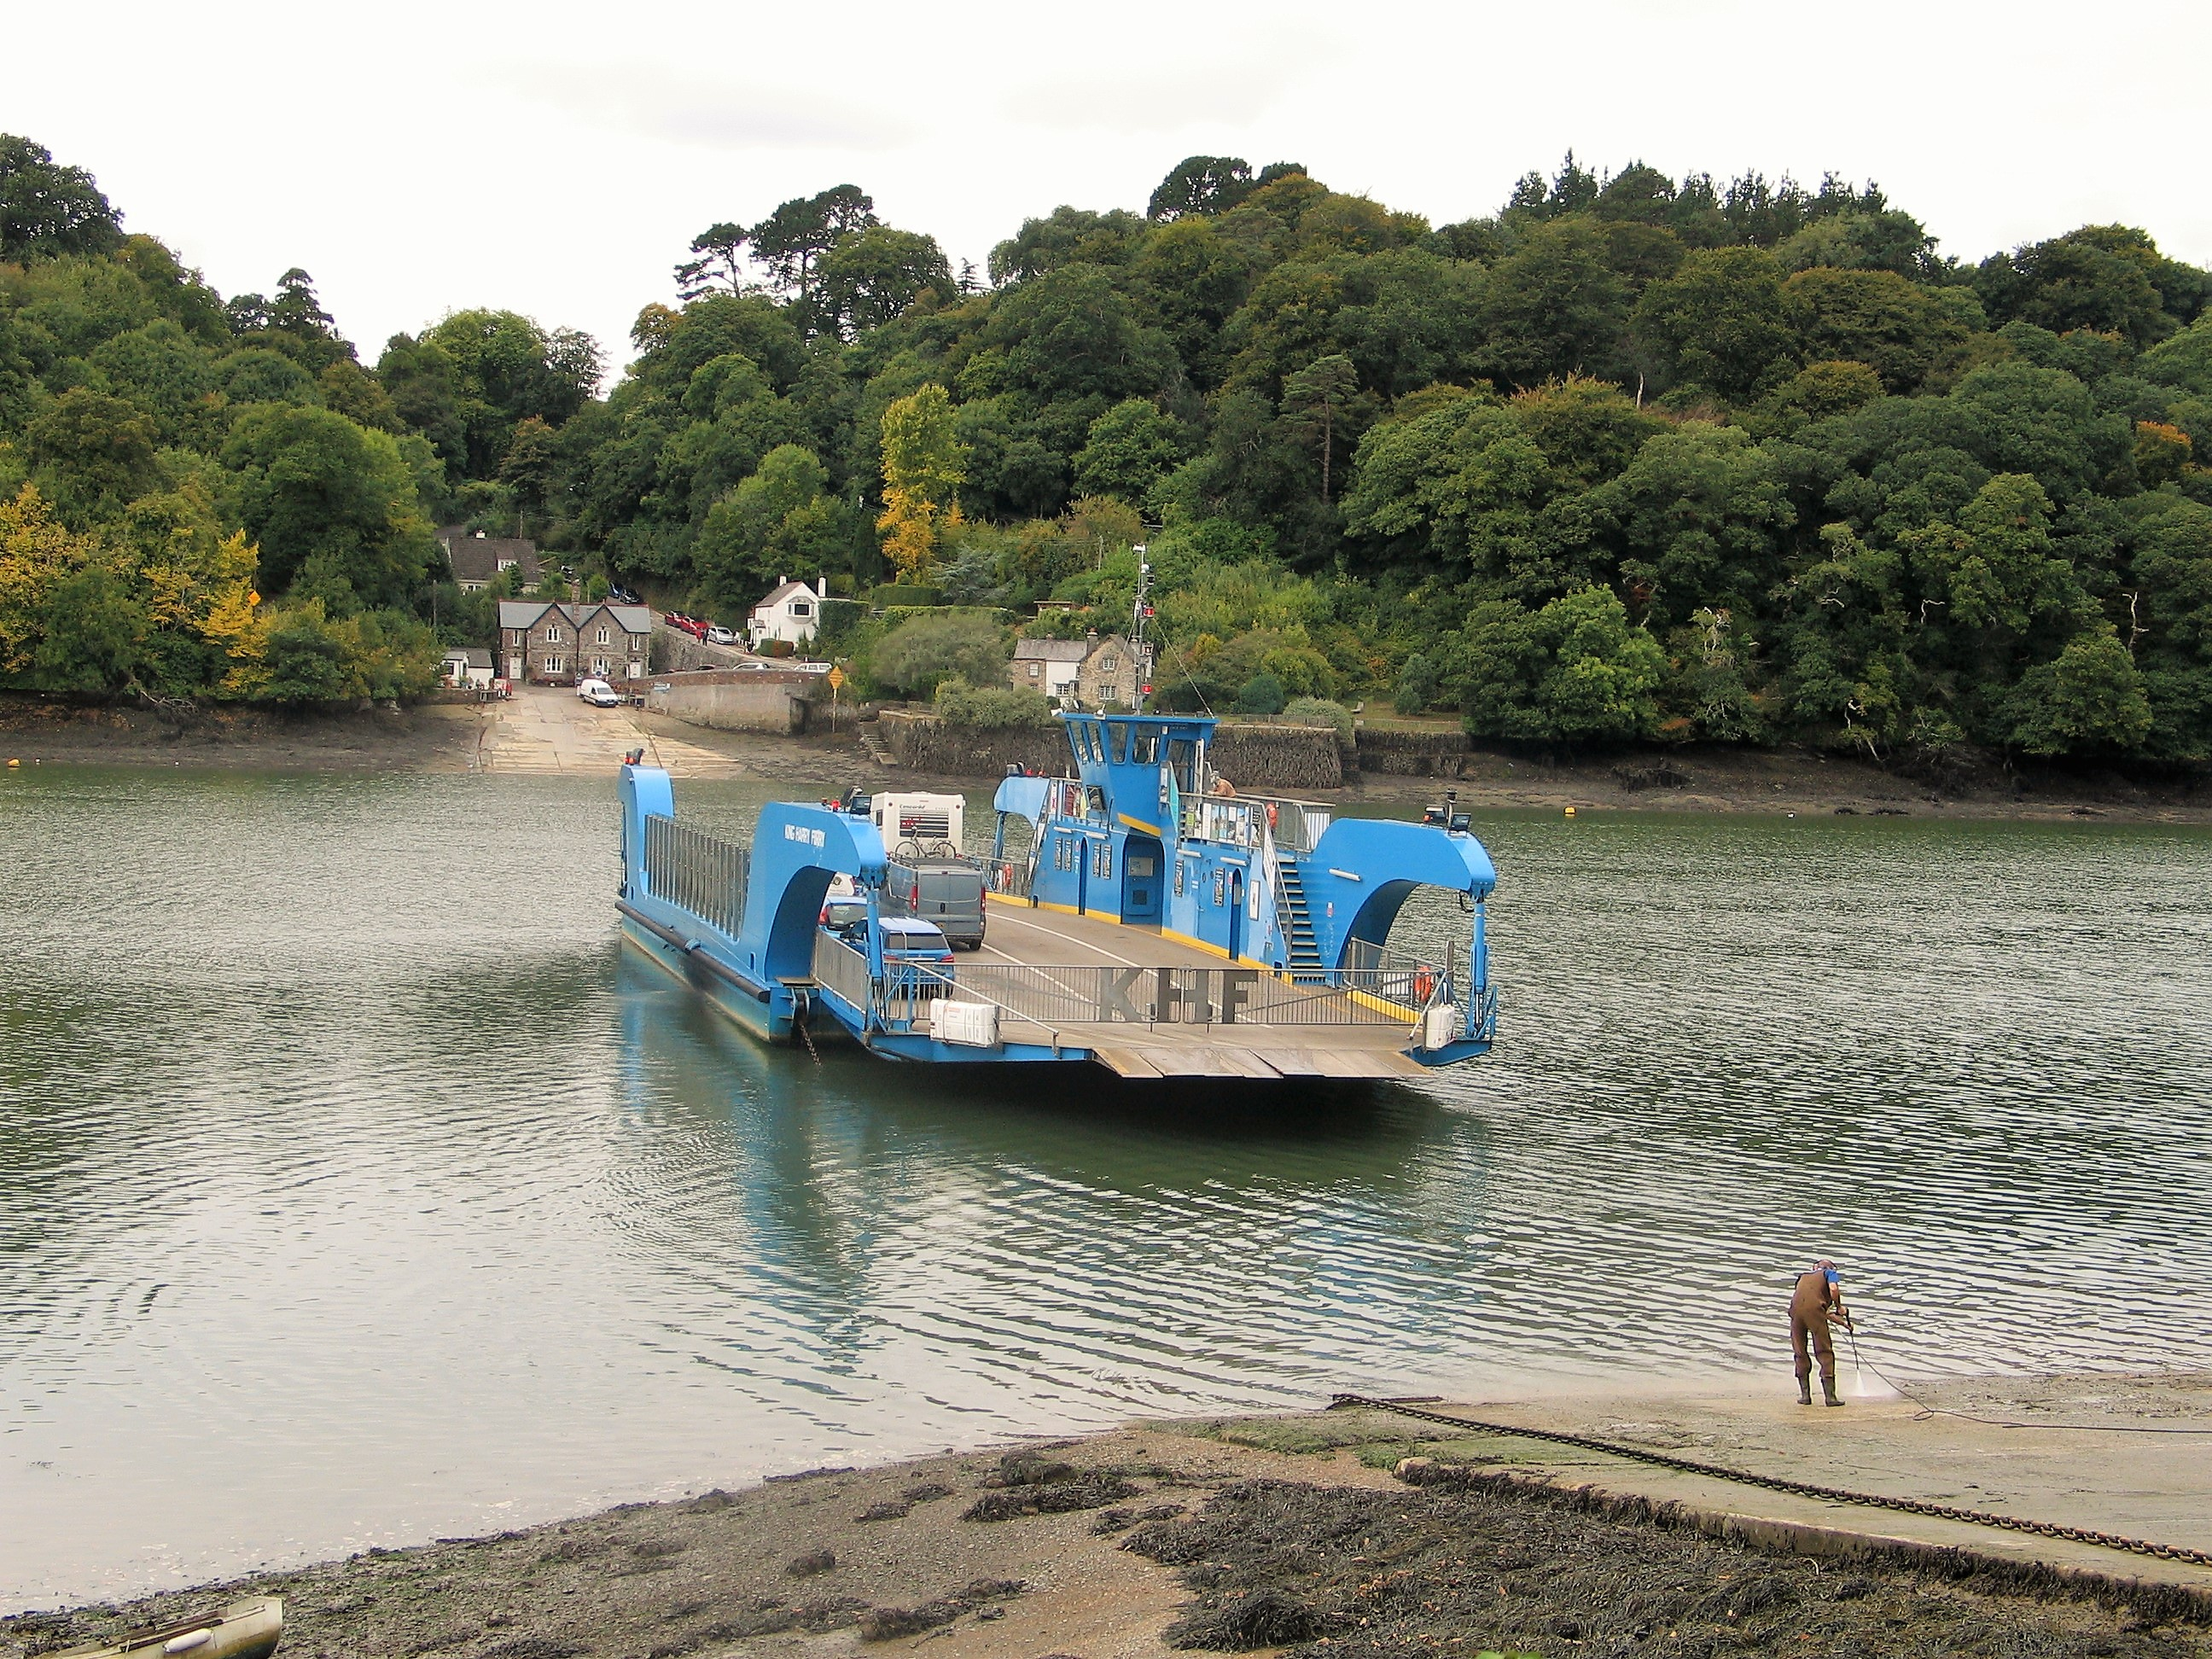 King Harry Ferry crossing the River Fal